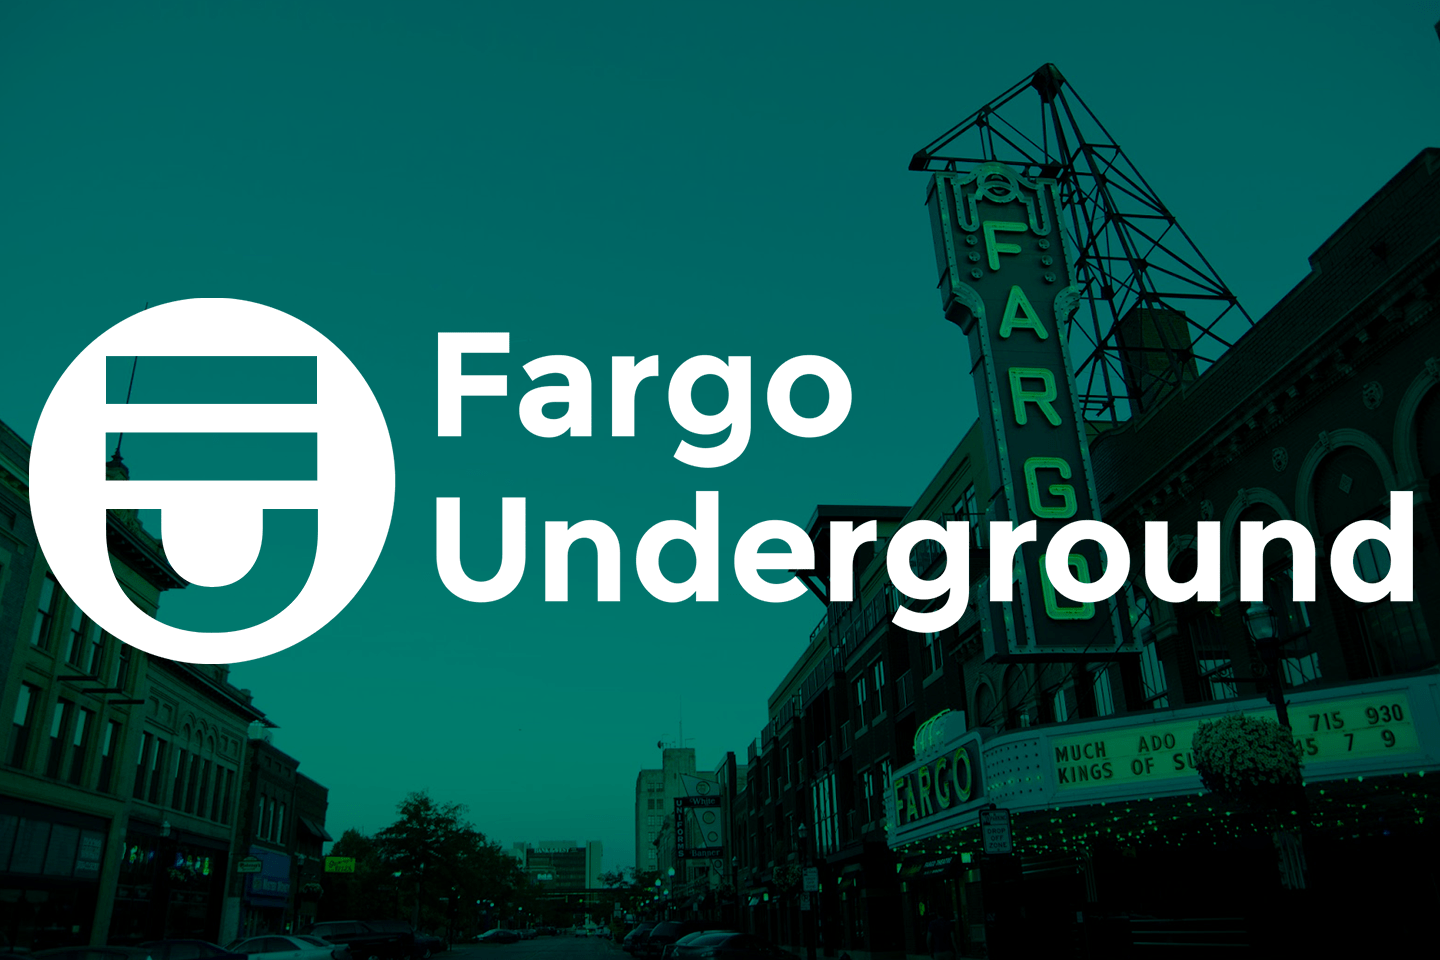 Fargo Underground Events